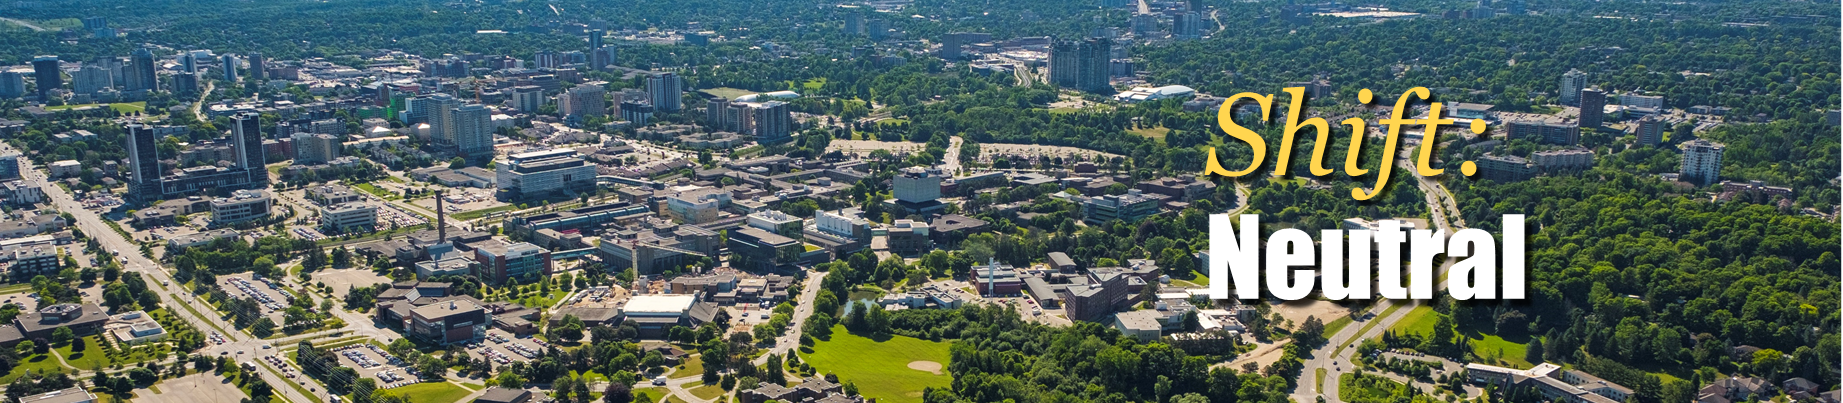 Aerial view of campus with Shift: Neutral text